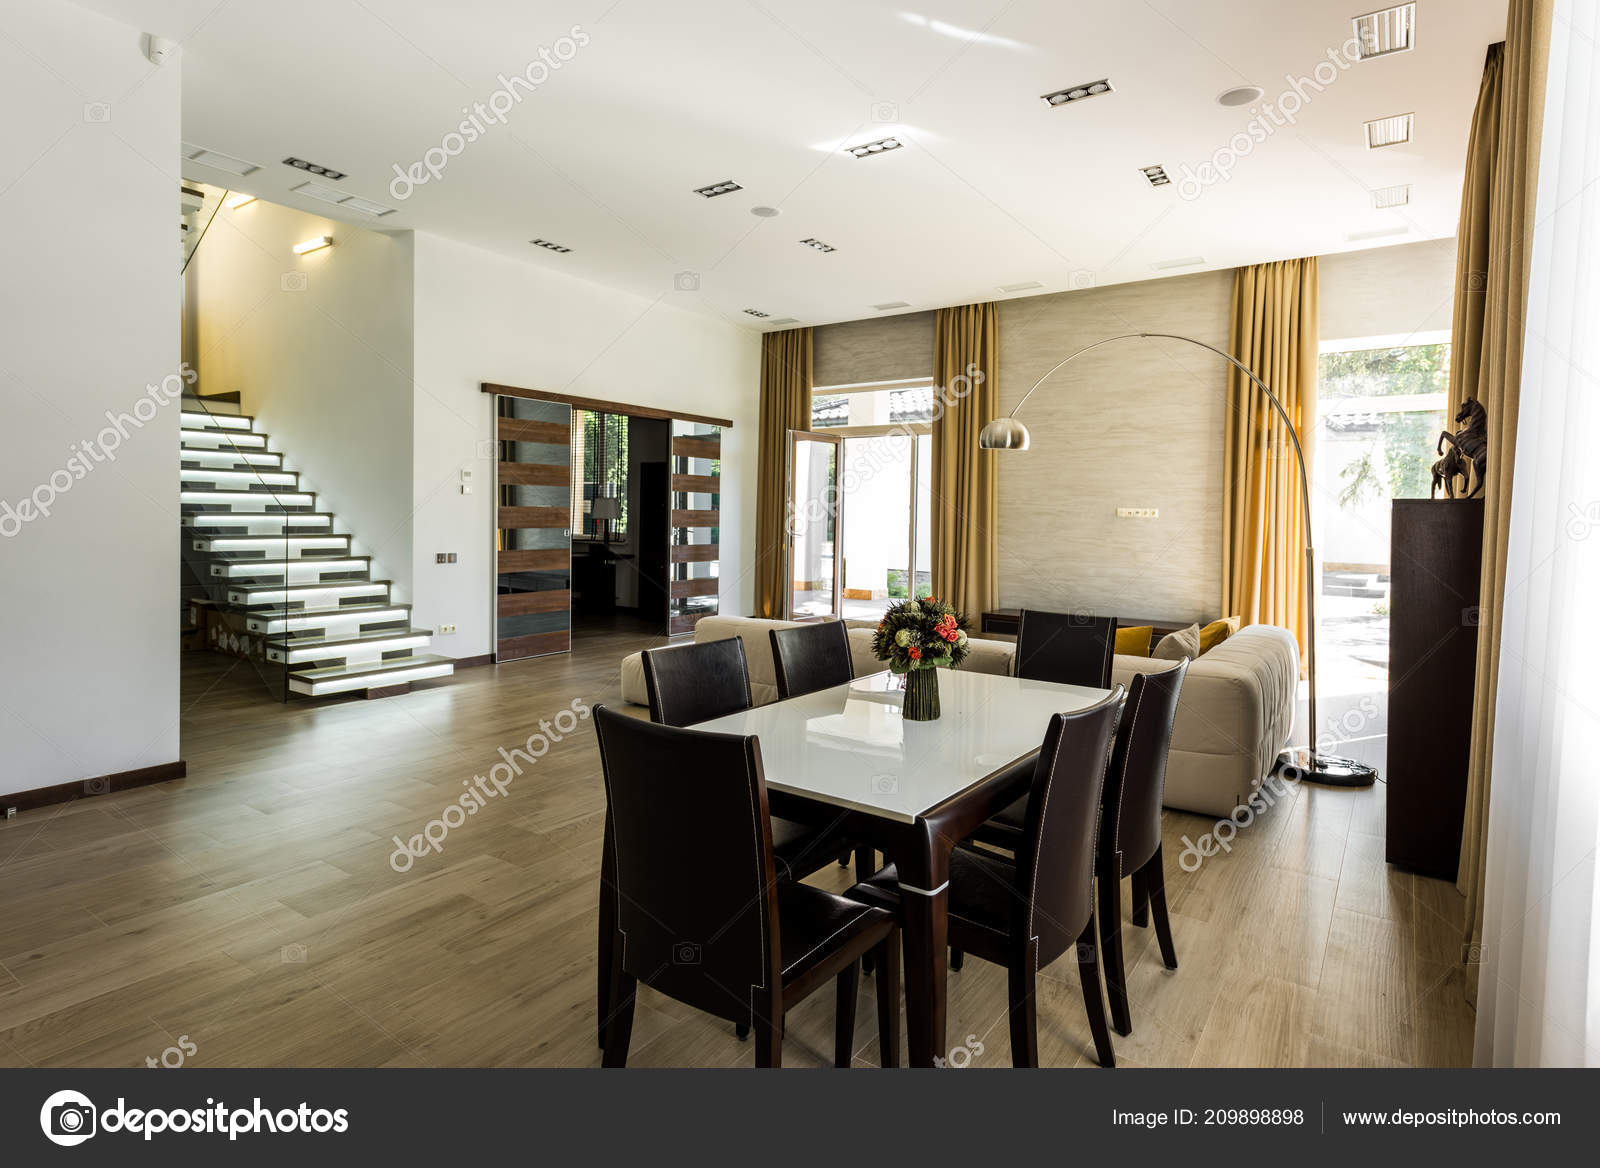 Interior View Empty Dining Room Table Chairs Stairs Stock Photo